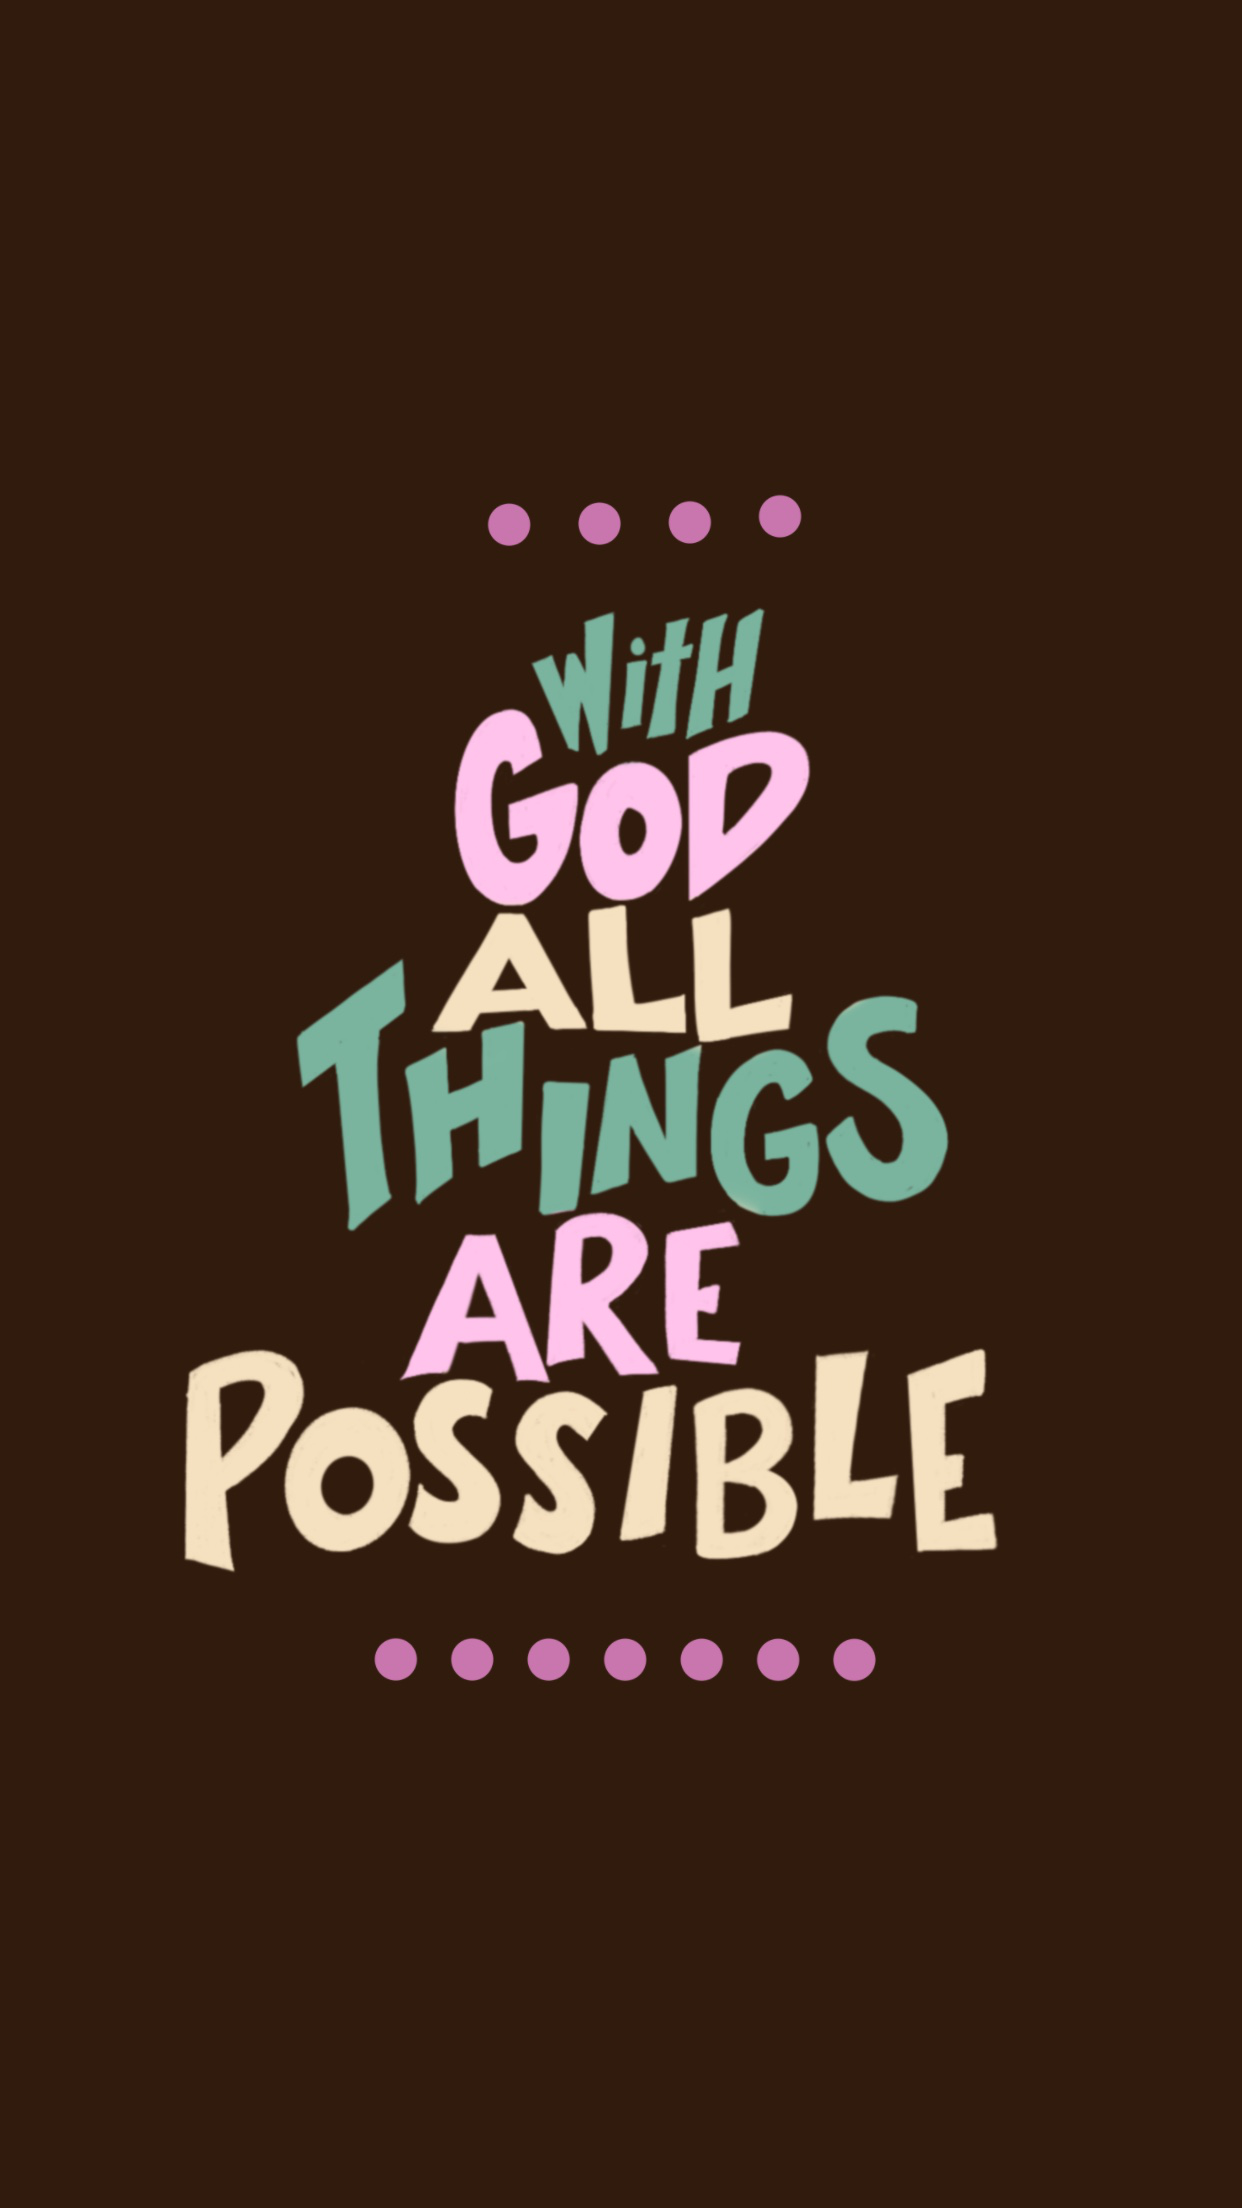 With God all things are possible phone wallpaper